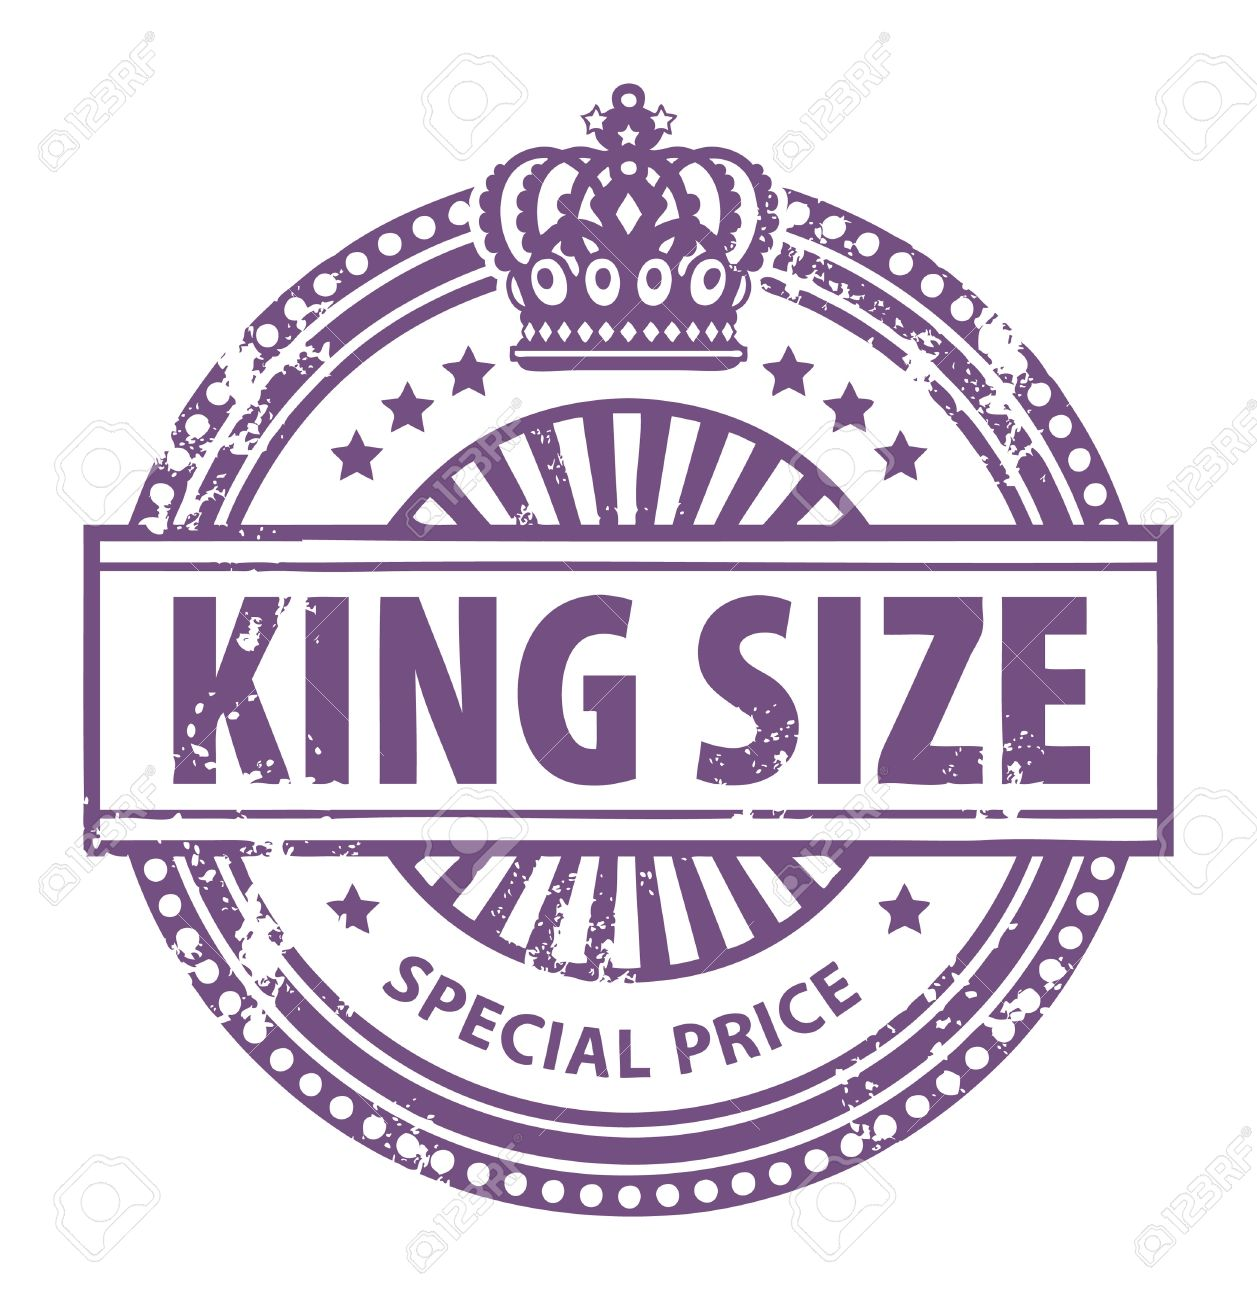 Abstract Grunge Rubber Stamp With Small Stars Crown And The Word King Size Written Inside